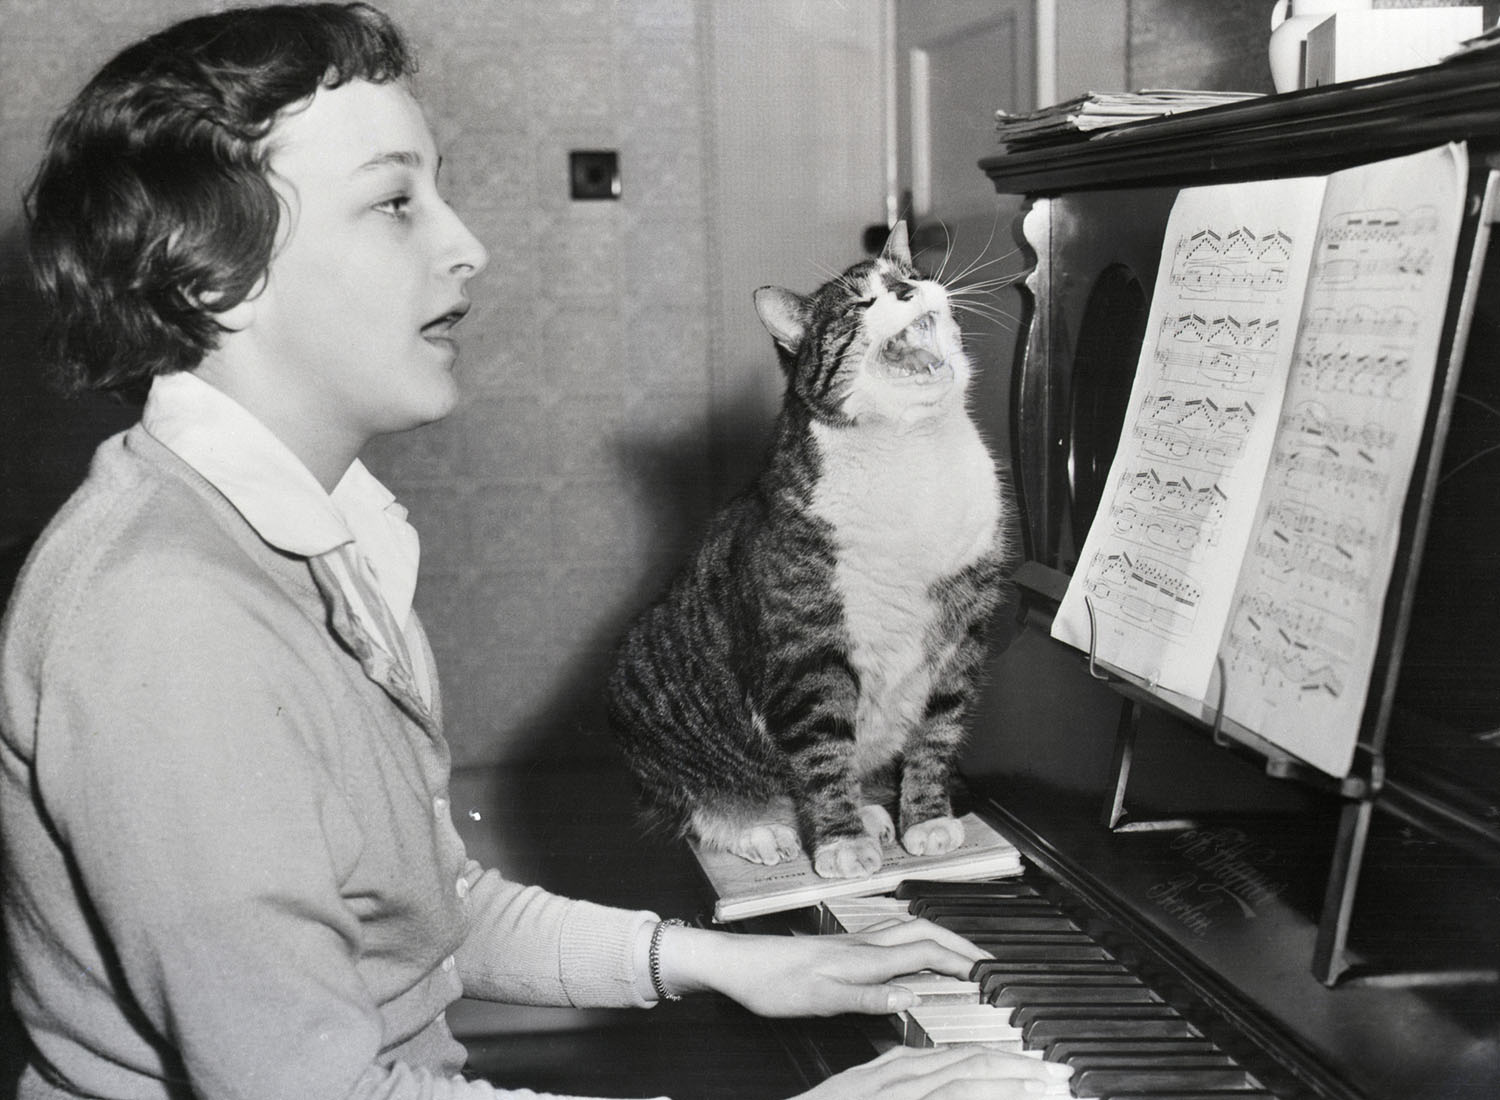 singing with cat